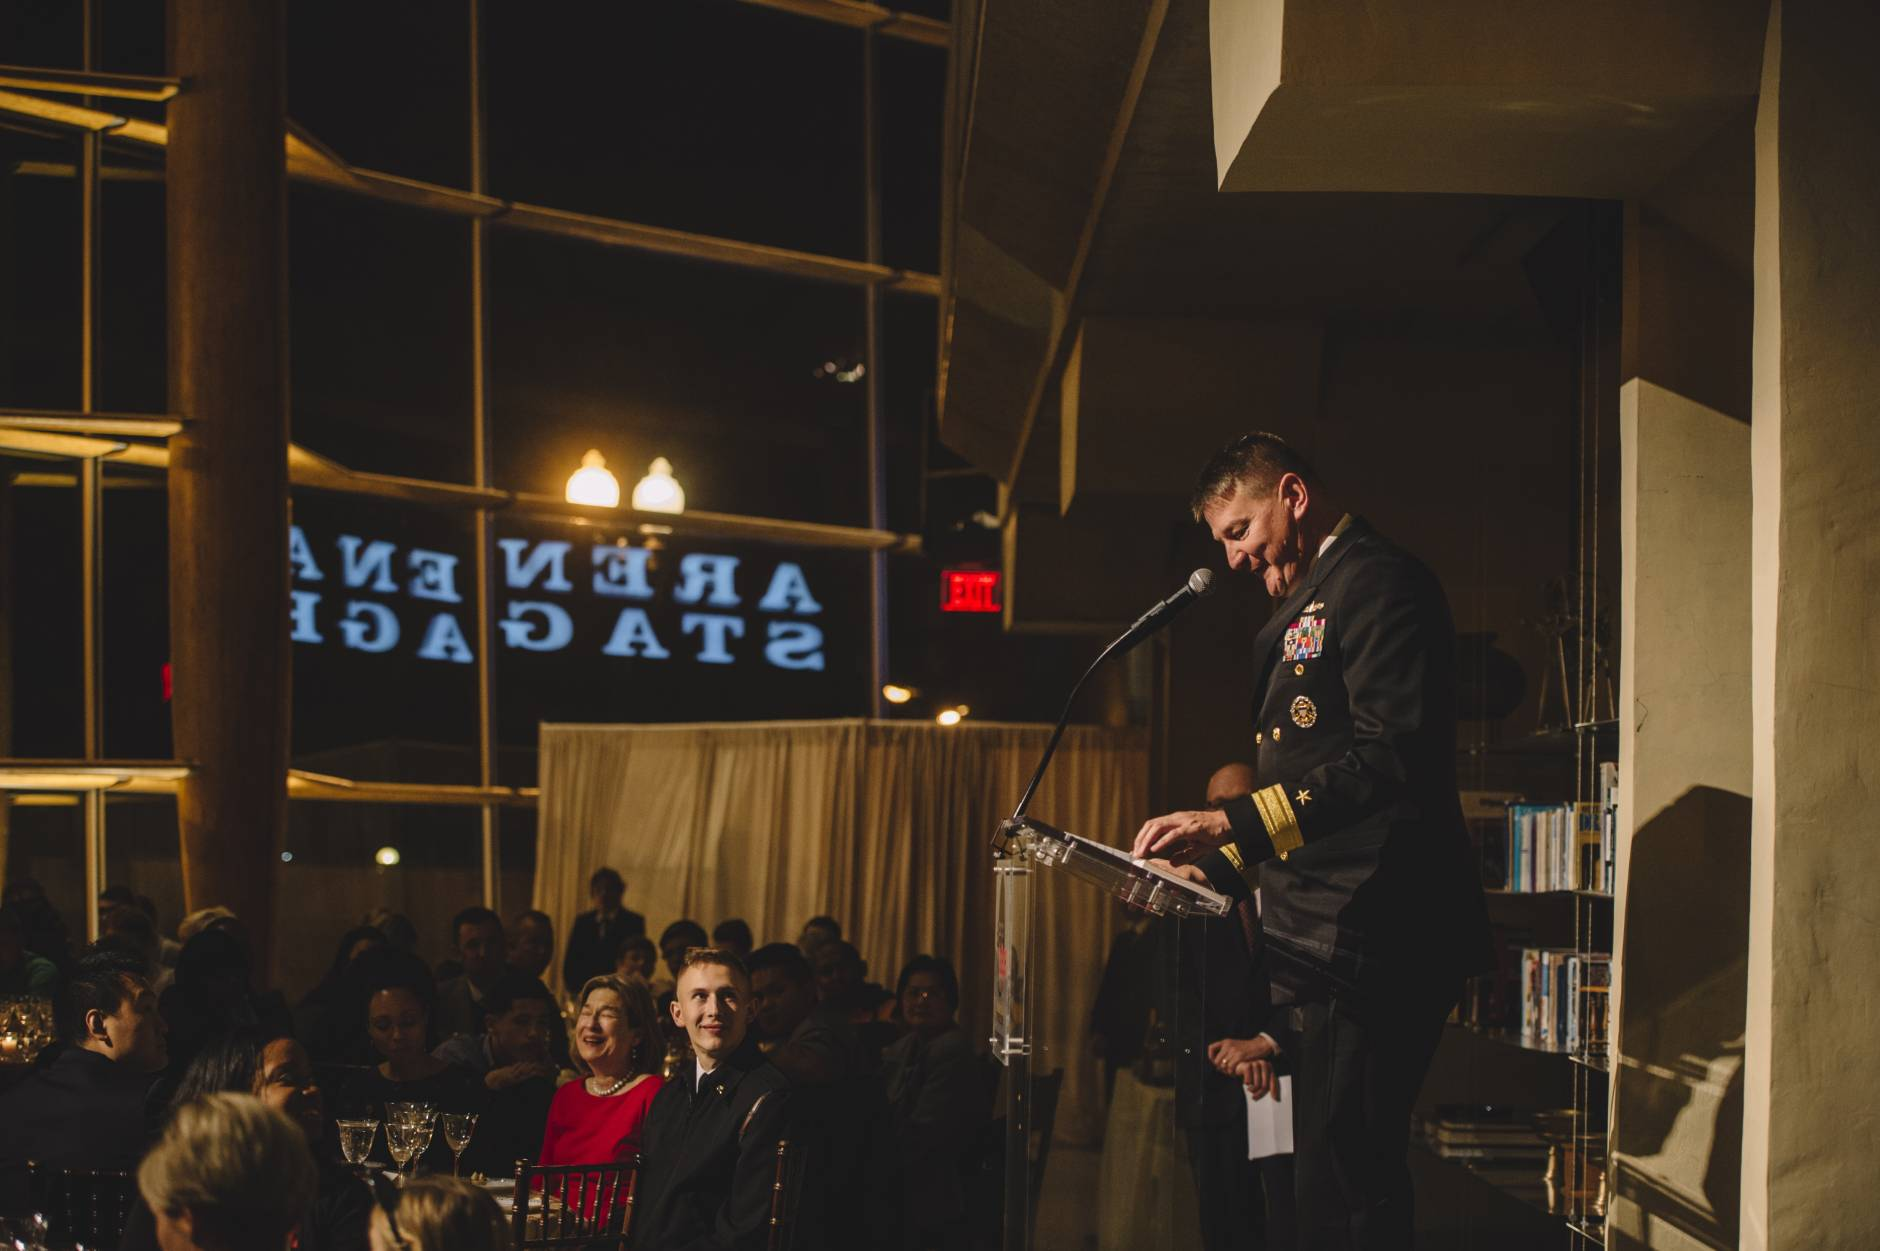 In this photo, Rear Adm. Charles W. Rock addresses dinner guests. (Photo by Cameron Whitman)